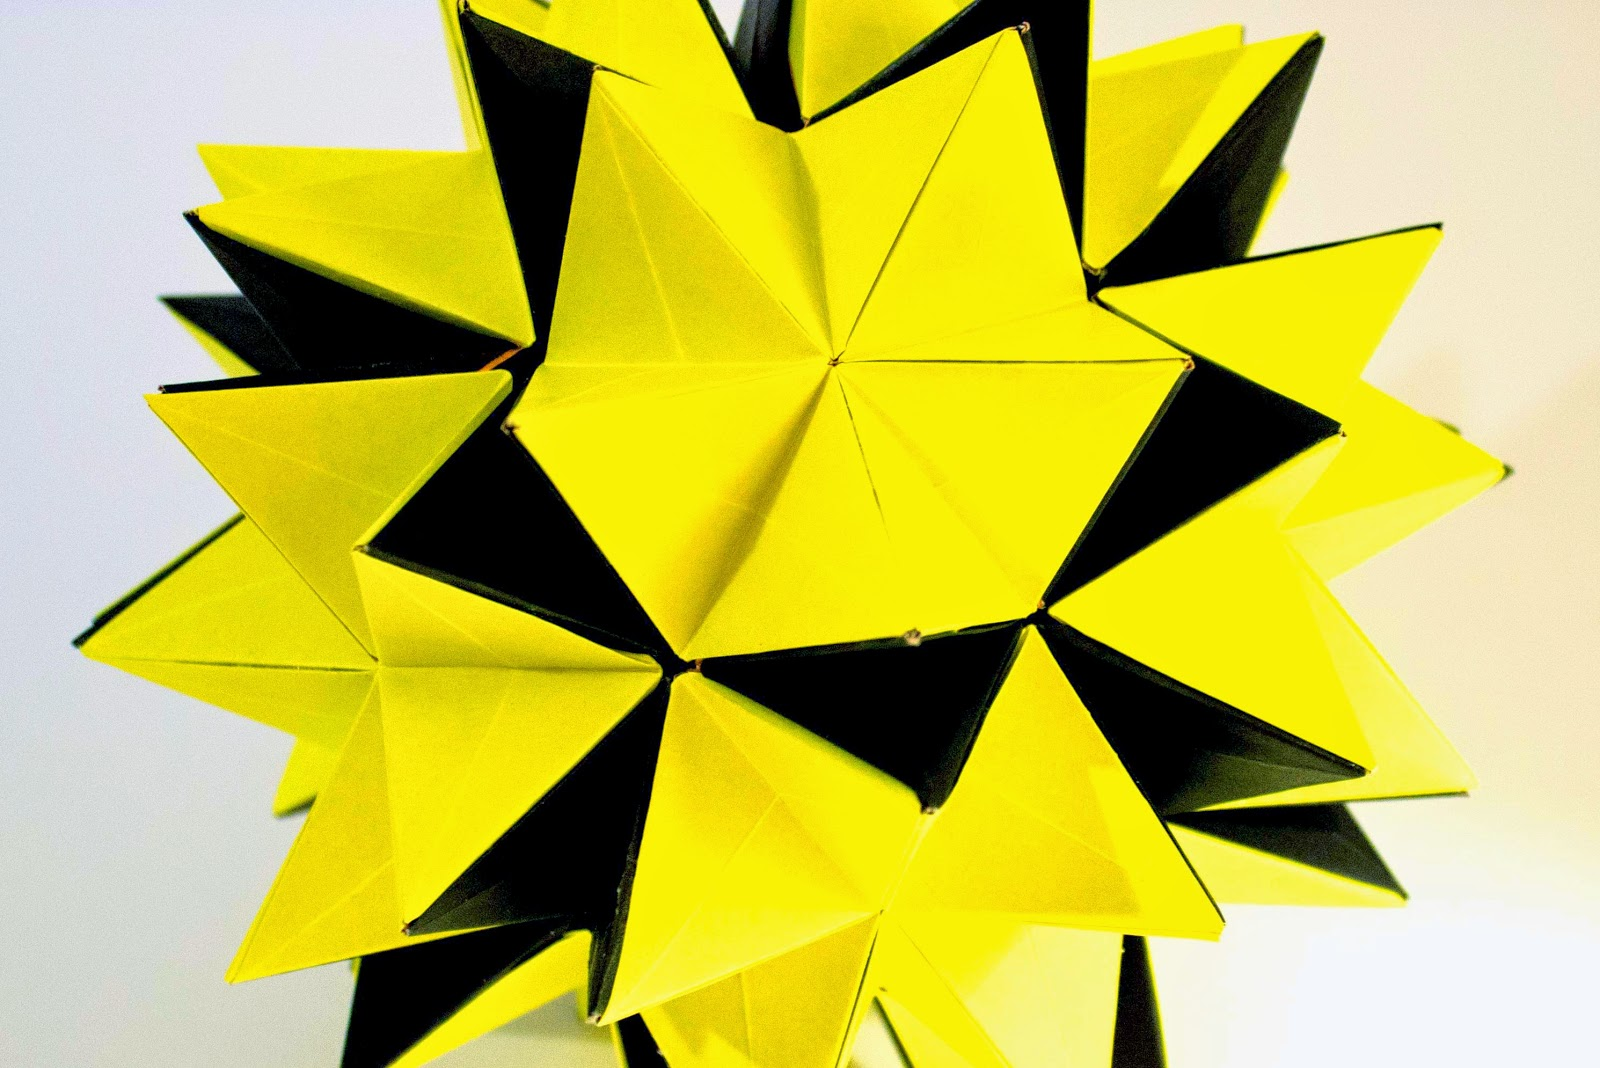 Will fold for paper revealed flowerpopup star design by revealed flowerpopup star design by valentina gonchar mightylinksfo